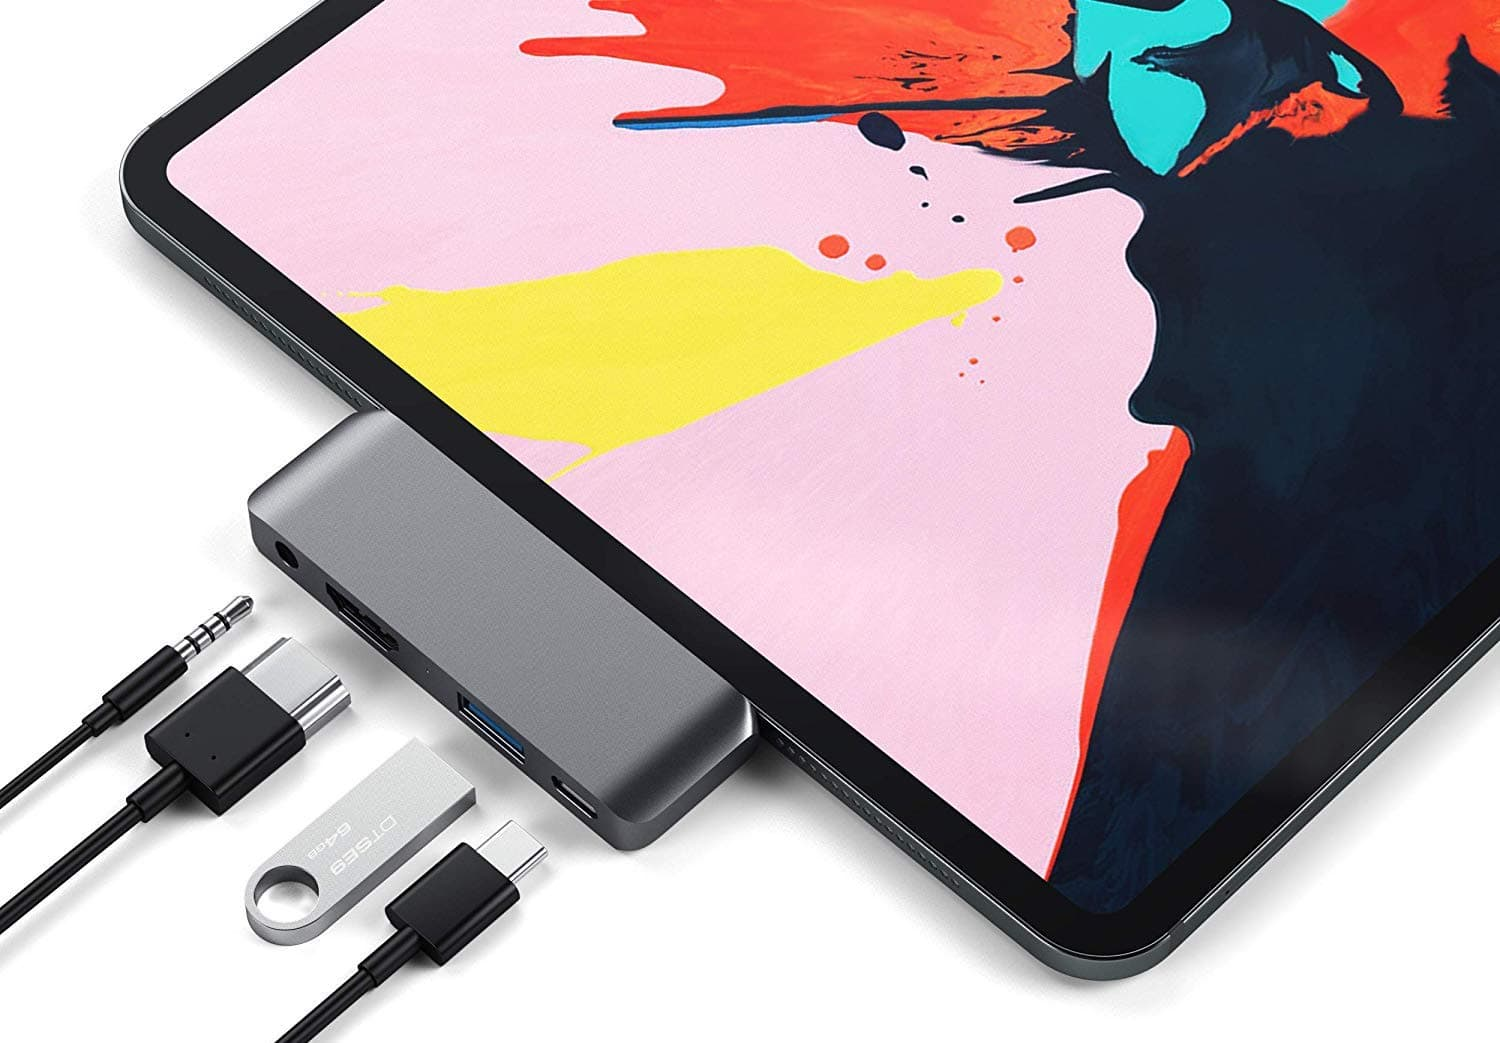 Satechi USB-C hub for iPad Pro